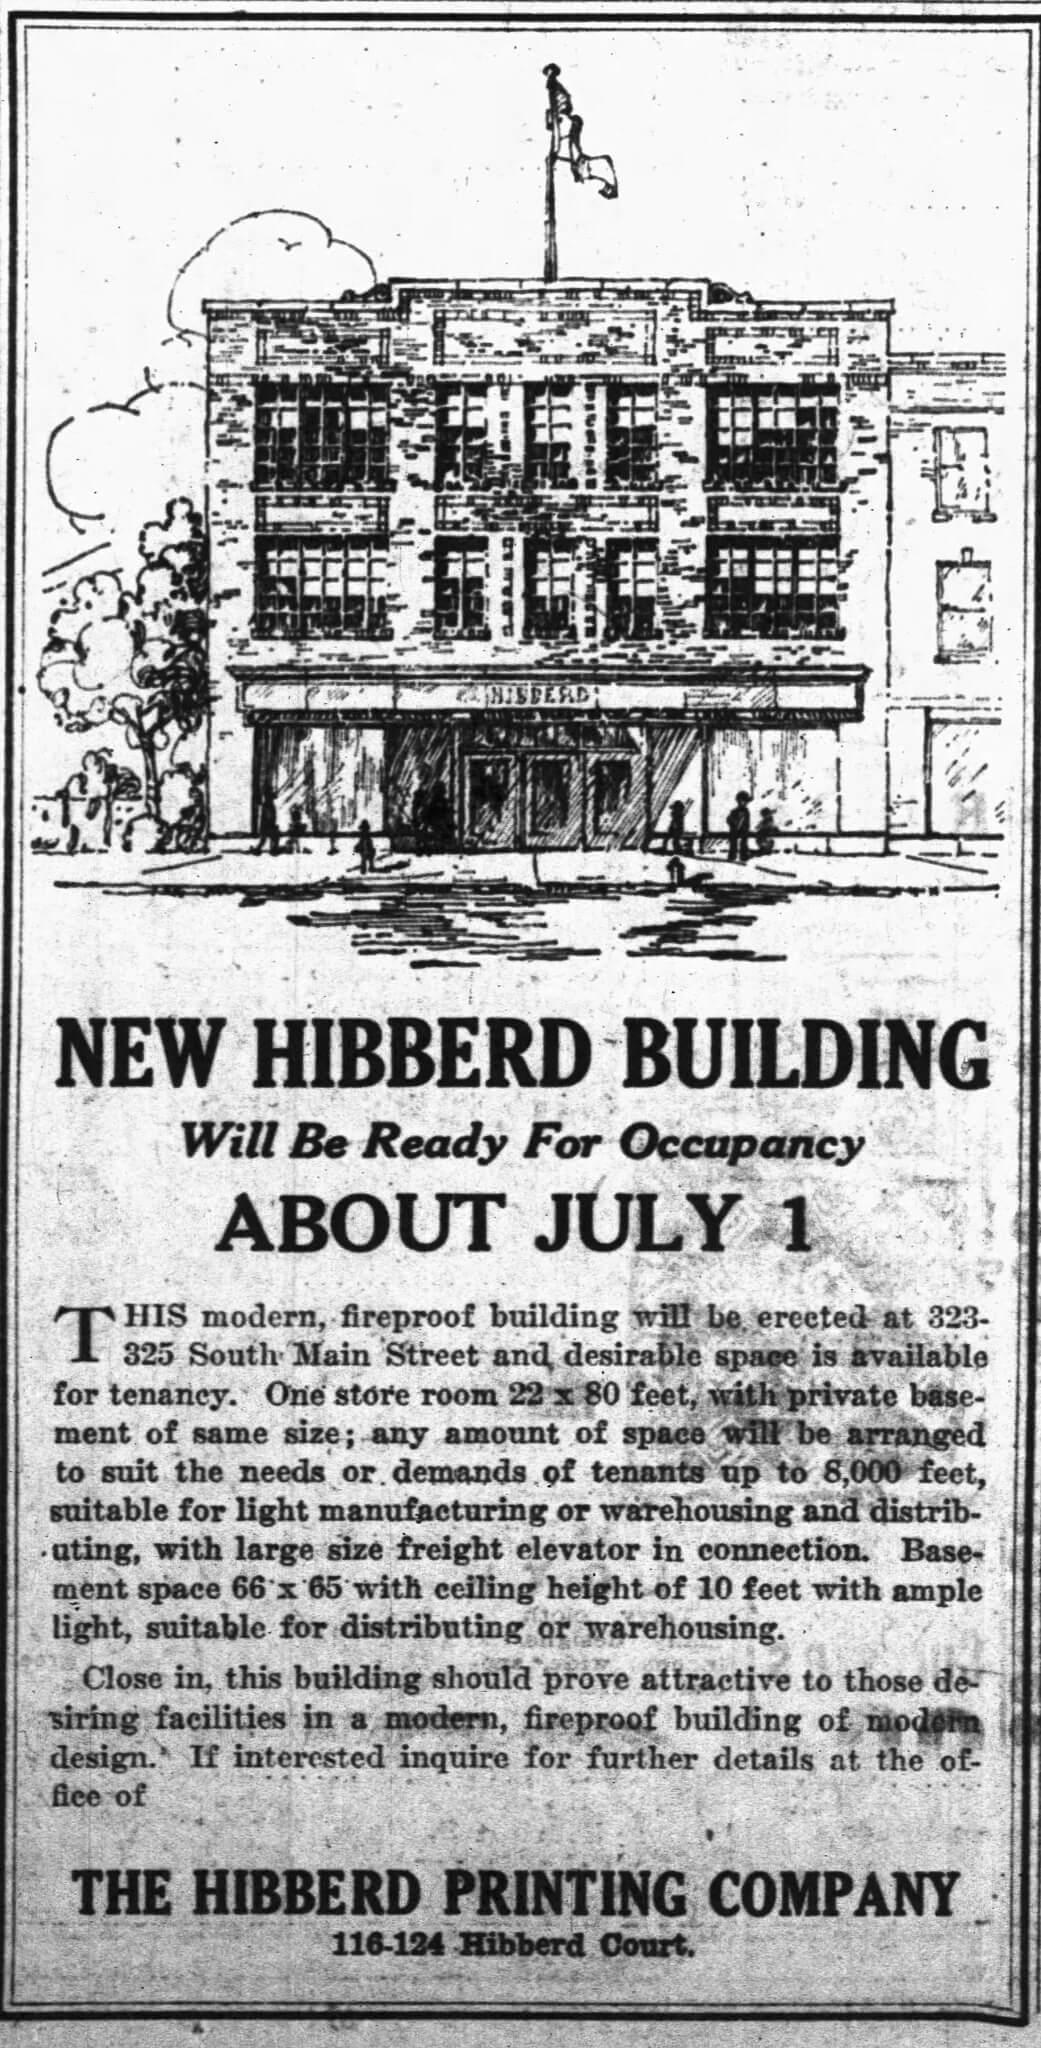 1926 South Bend Tribune advertisement searching for tenants to operate inside the new building alongside the printing company.